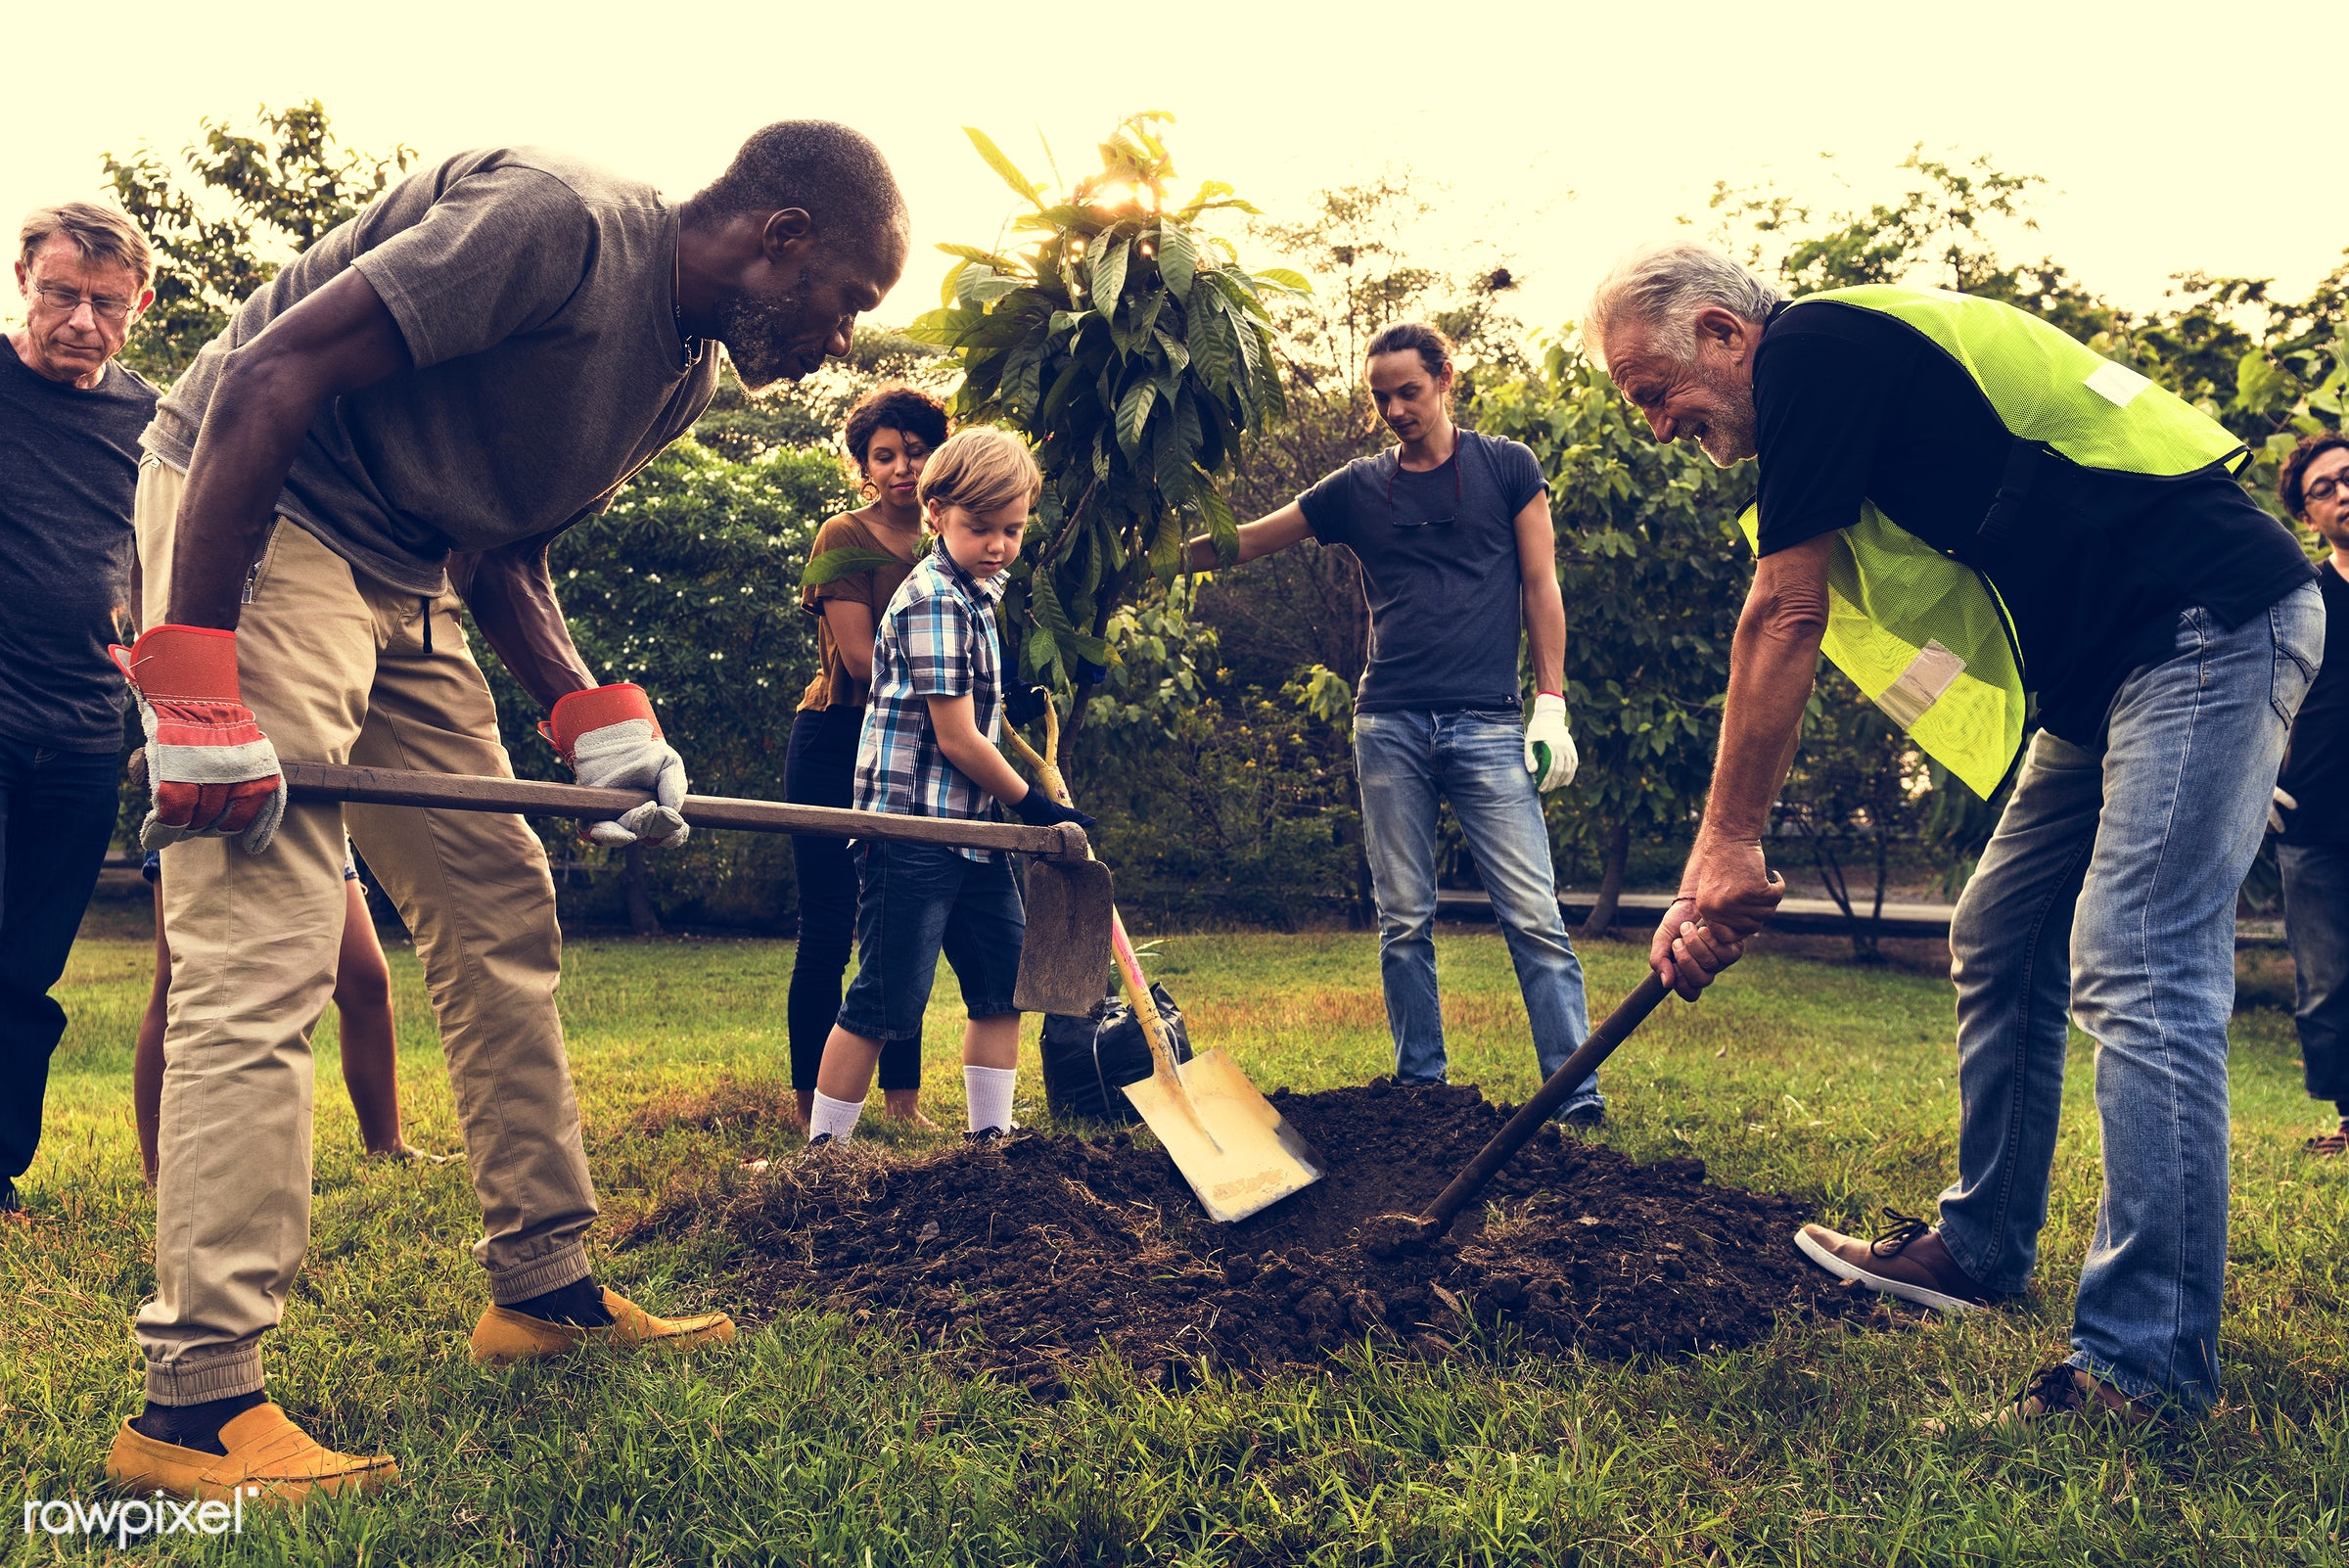 person, community service, plantation, people, together, kid, help, friends, nature, woman, lifestyle, friendship,...